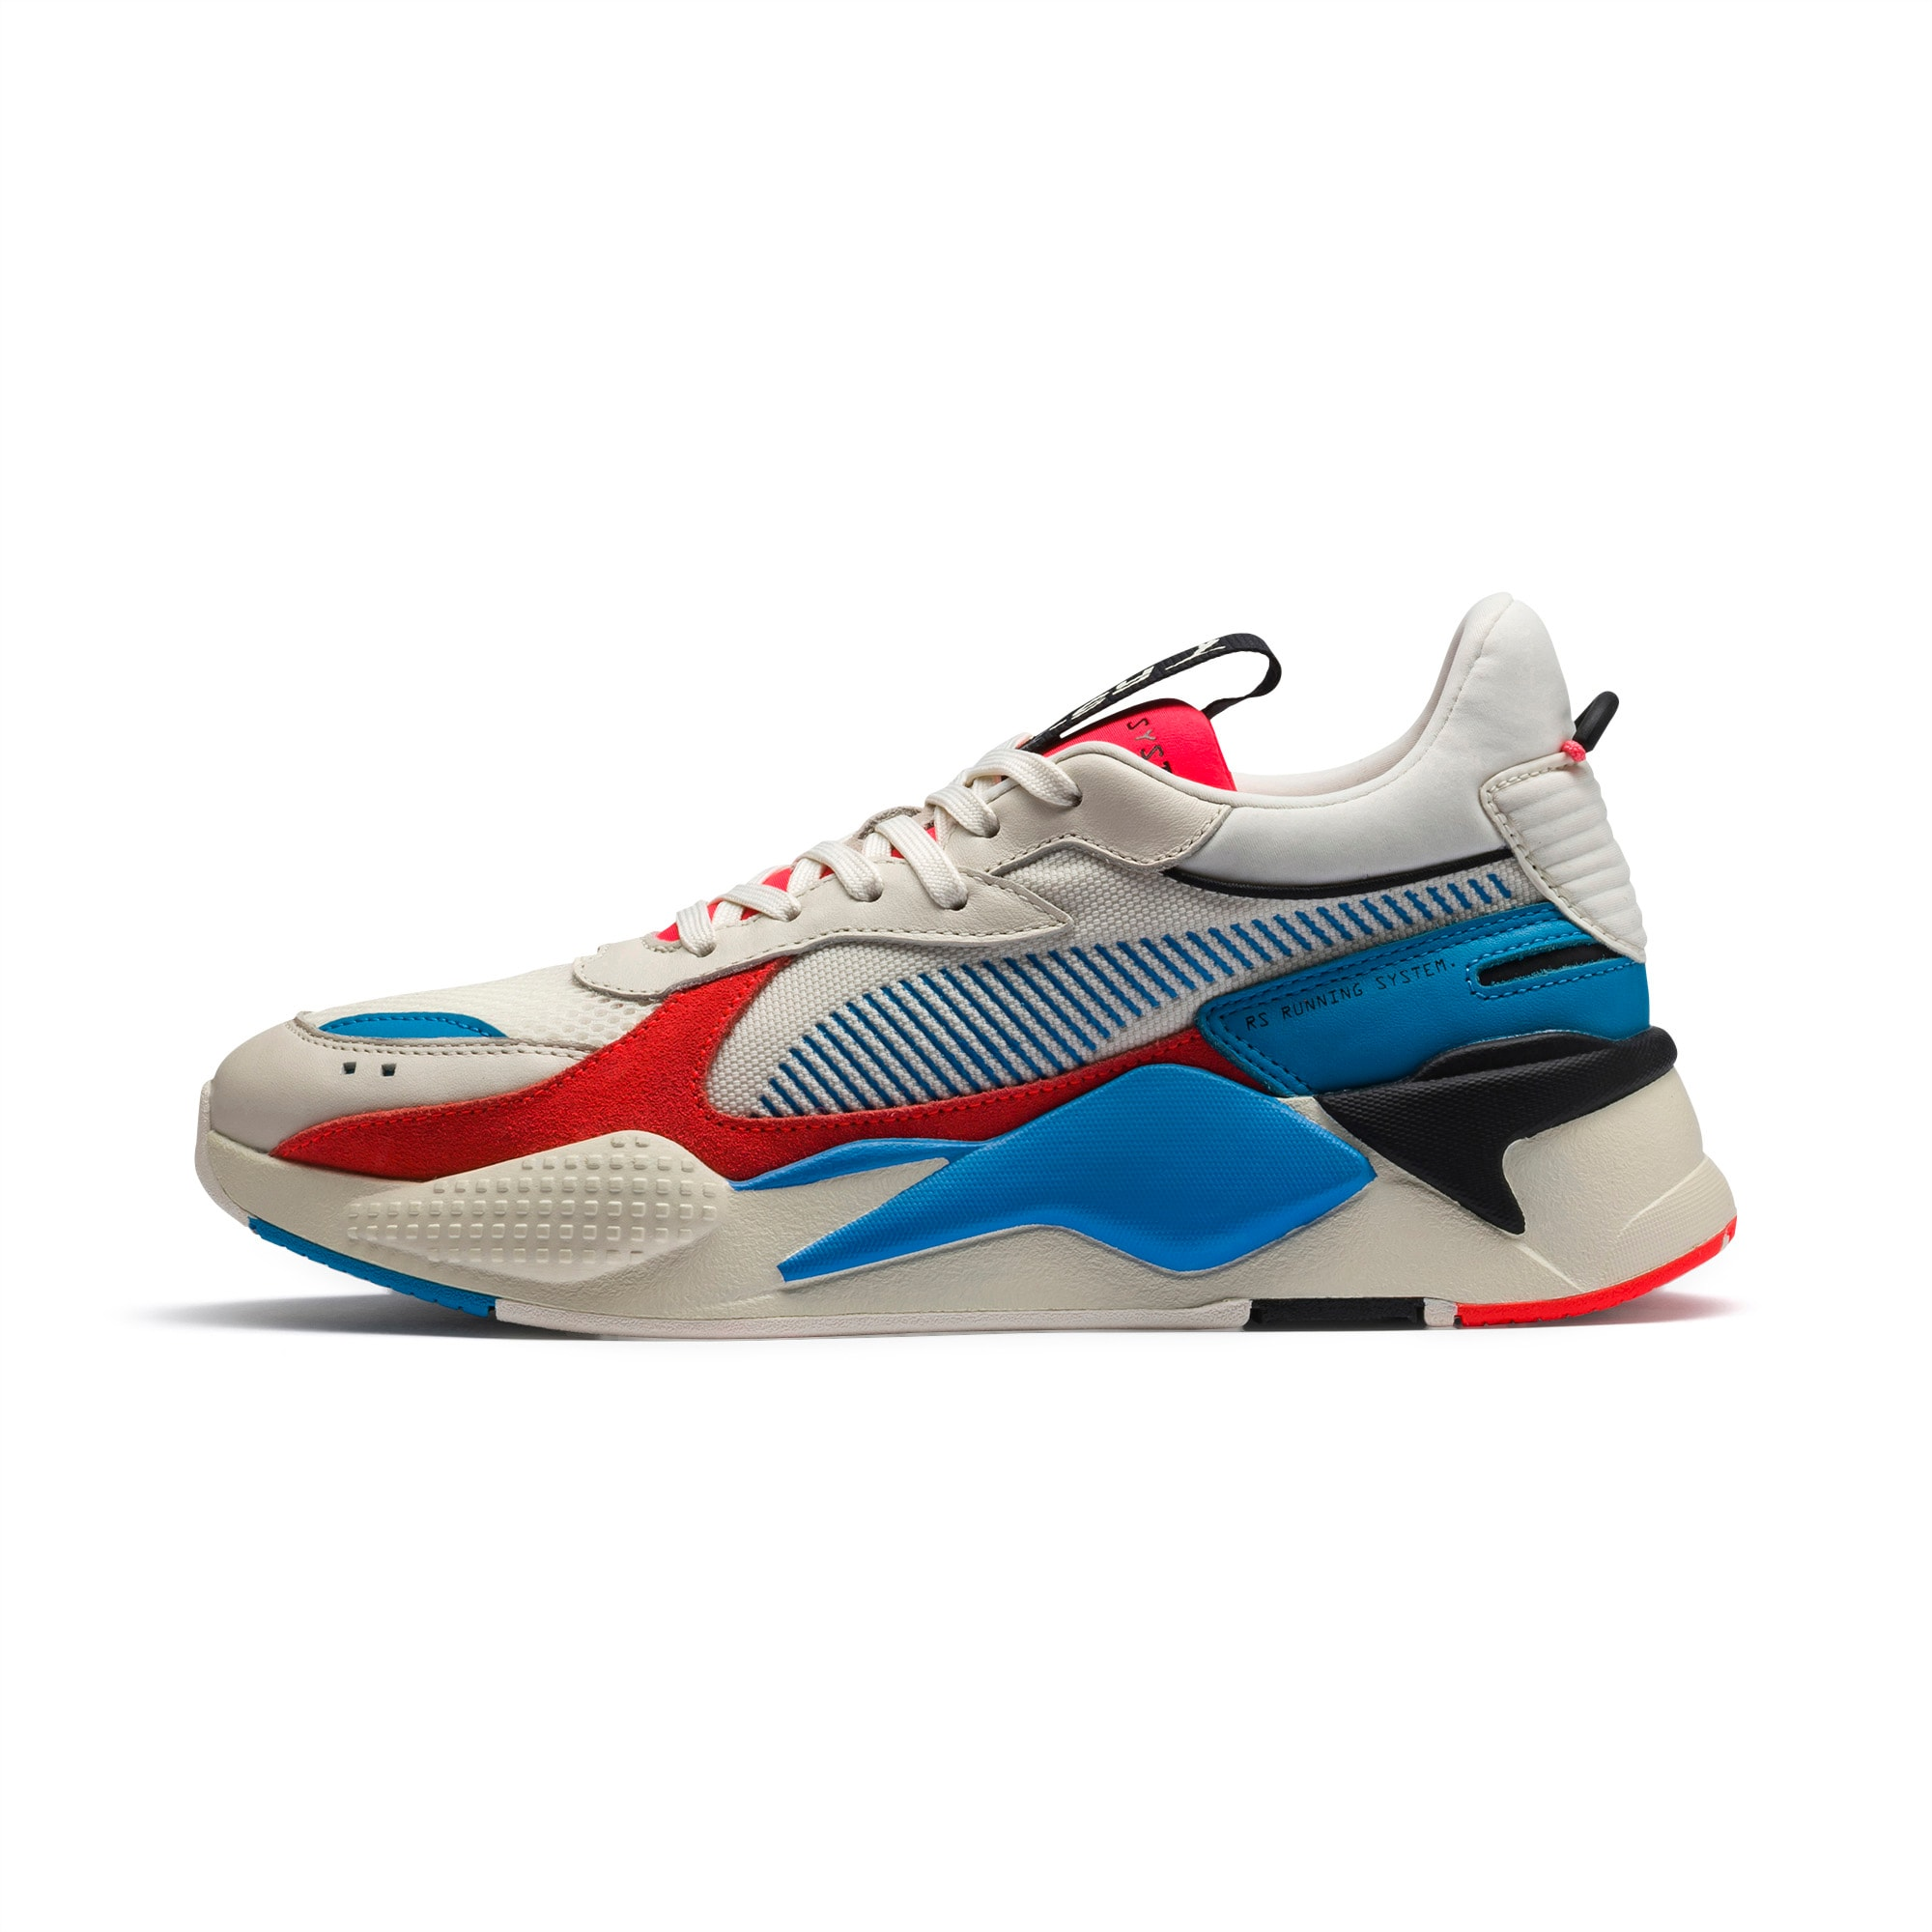 Puma RS X Reinvention sneakers | Puma sneakers men, Colorful